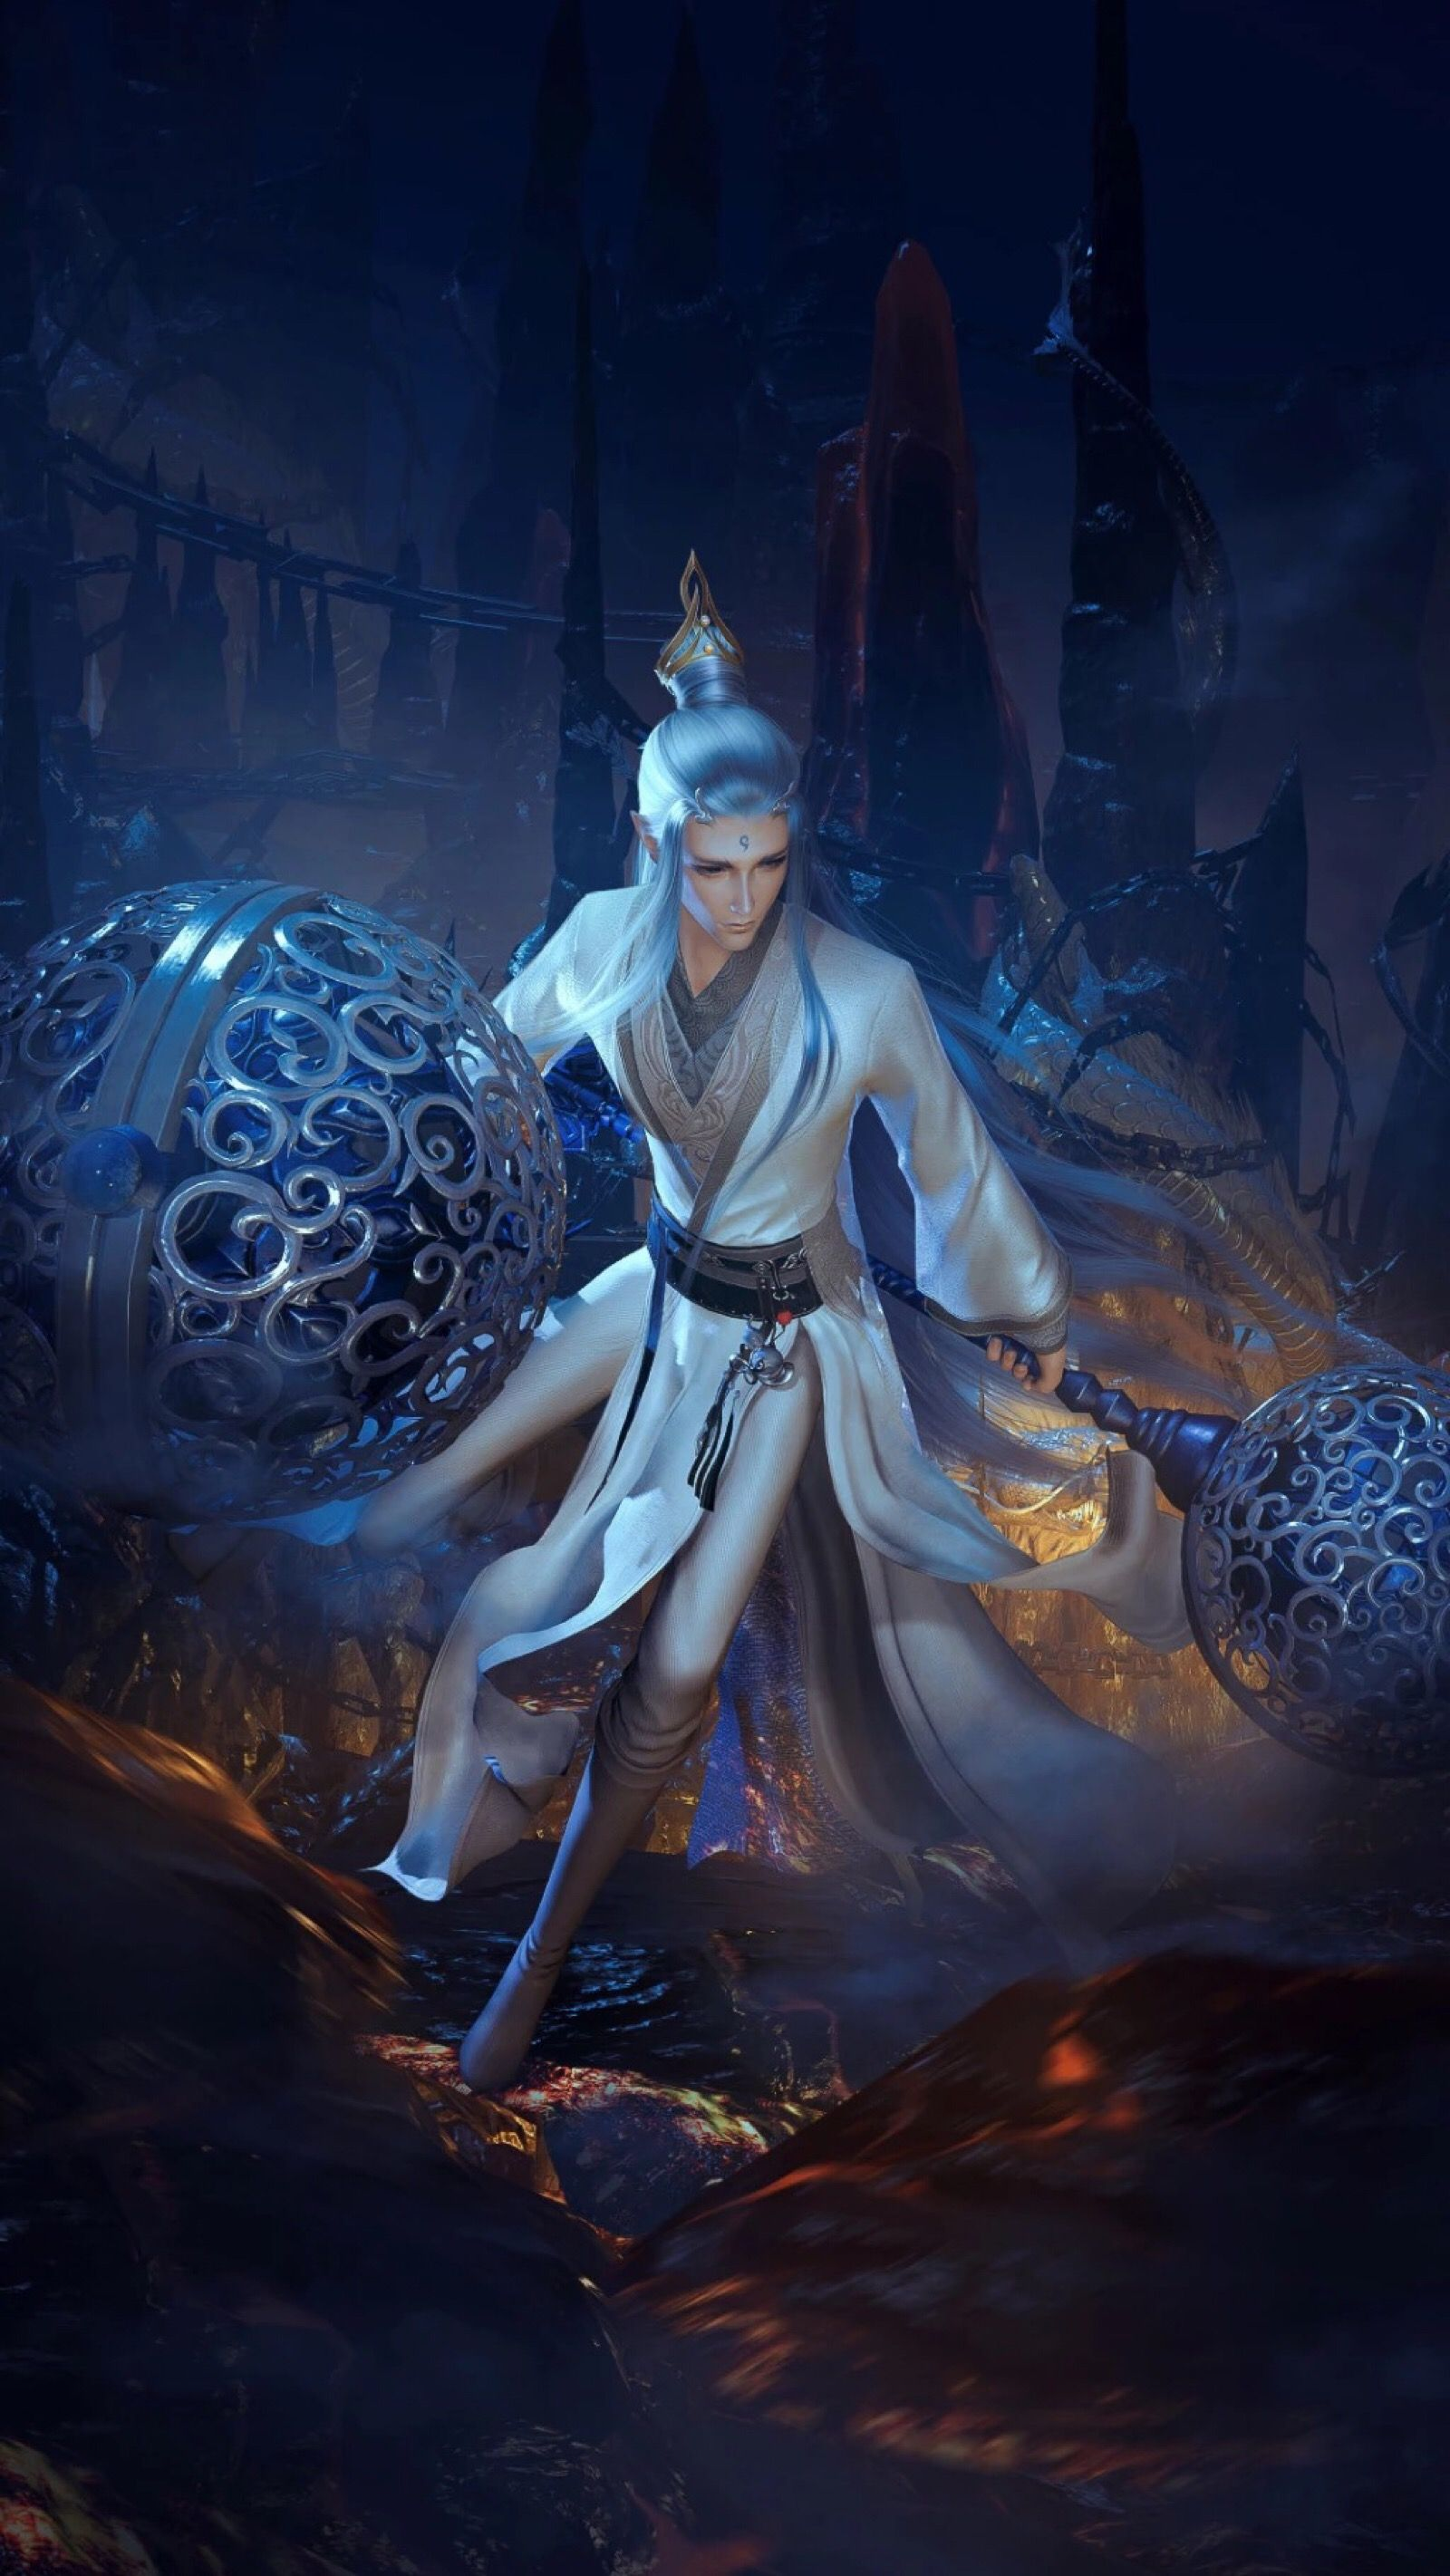 Ne Zha Synopsis A young boy, with the power to destroy